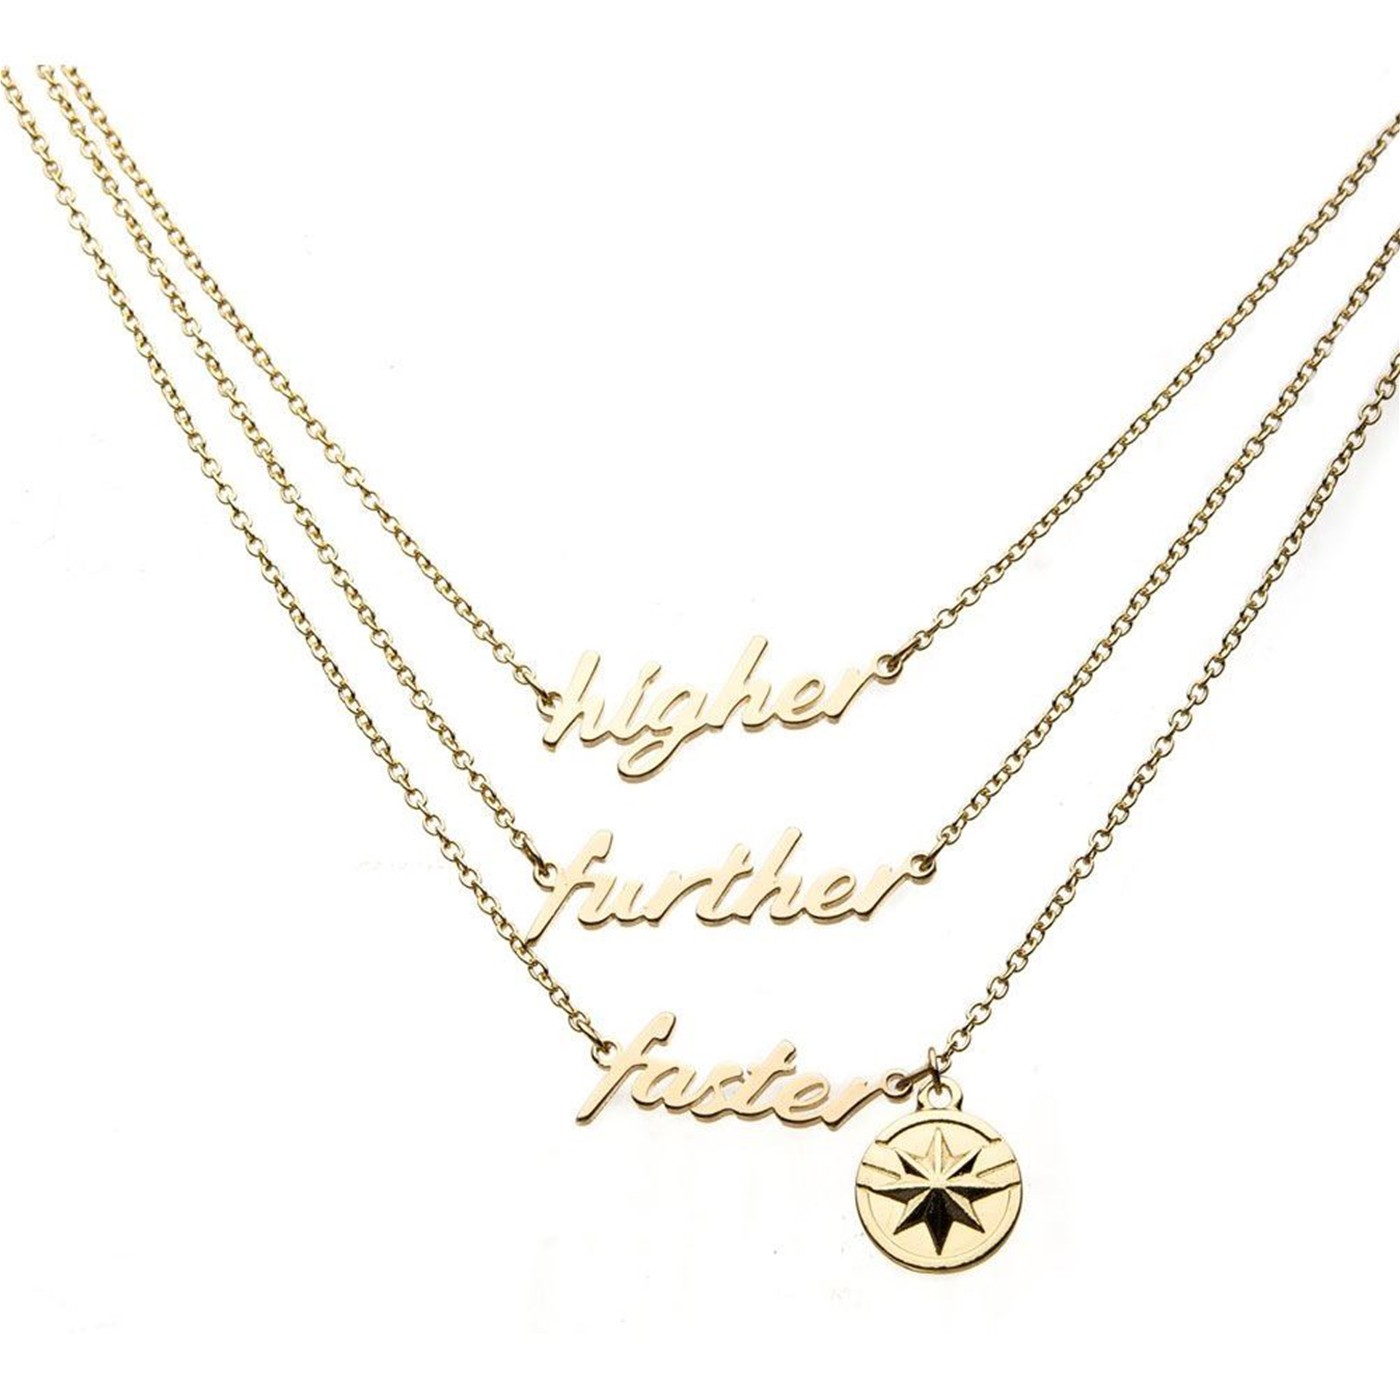 Captain Marvel Movie Higher Further Faster Necklace